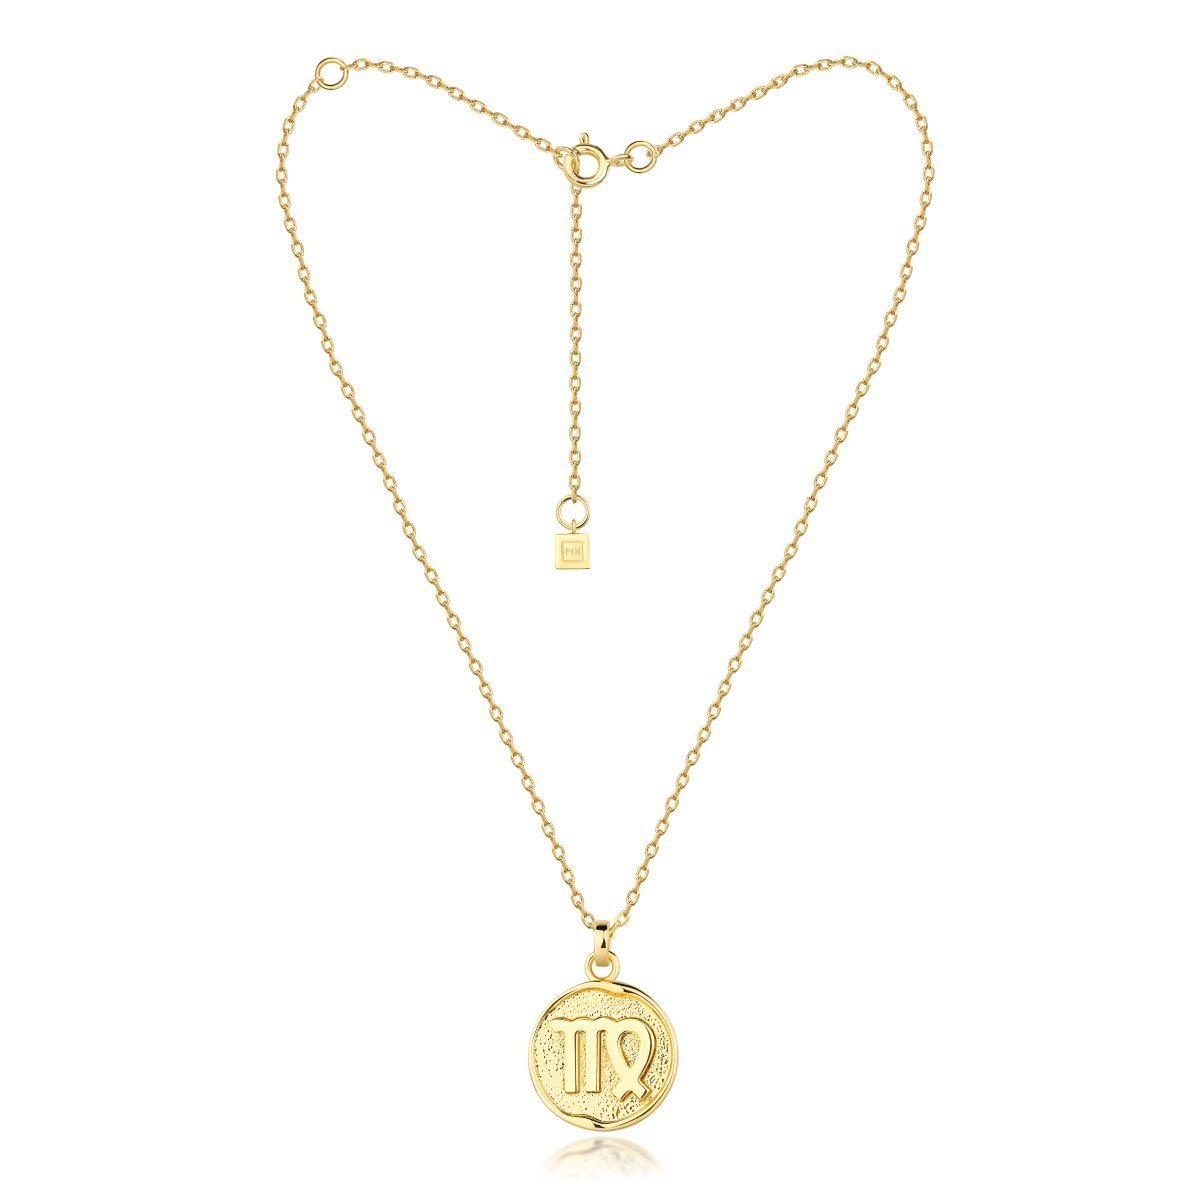 f + h jewellery - virgo necklace - gold